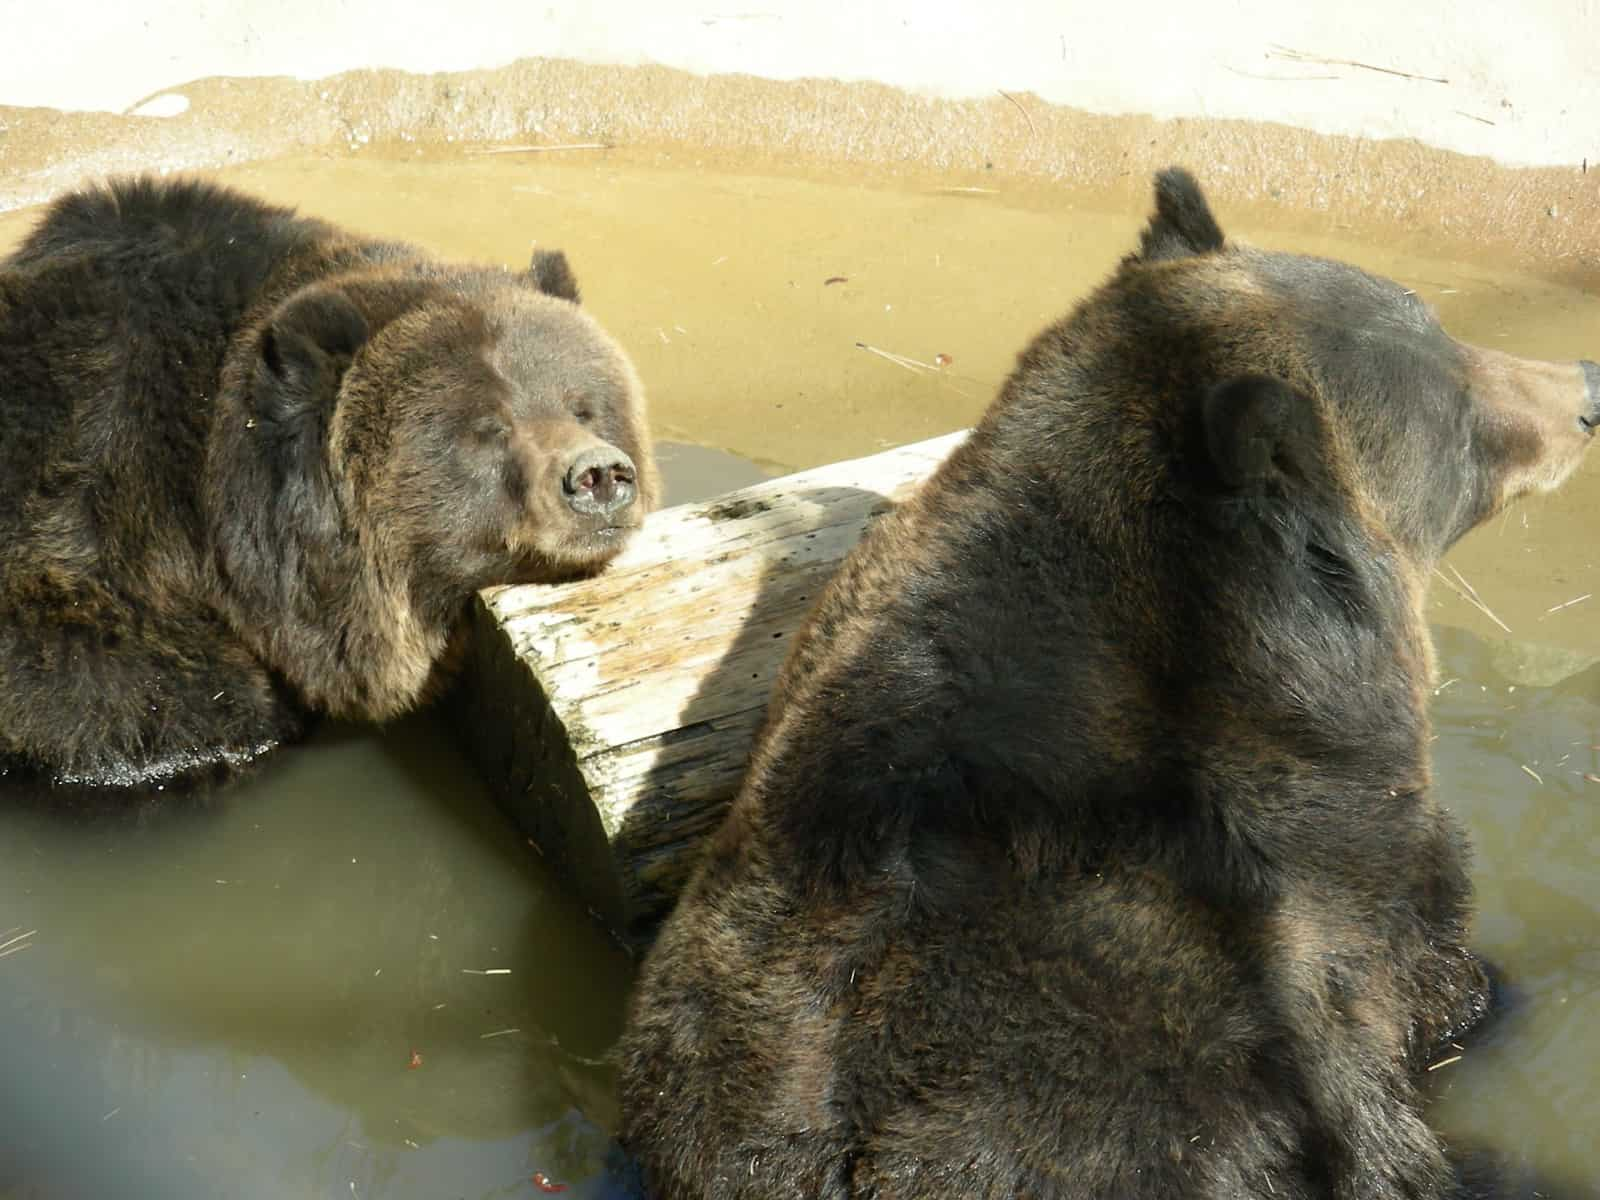 Two Grizzly Bears at the Big Bear Alpine Zoo